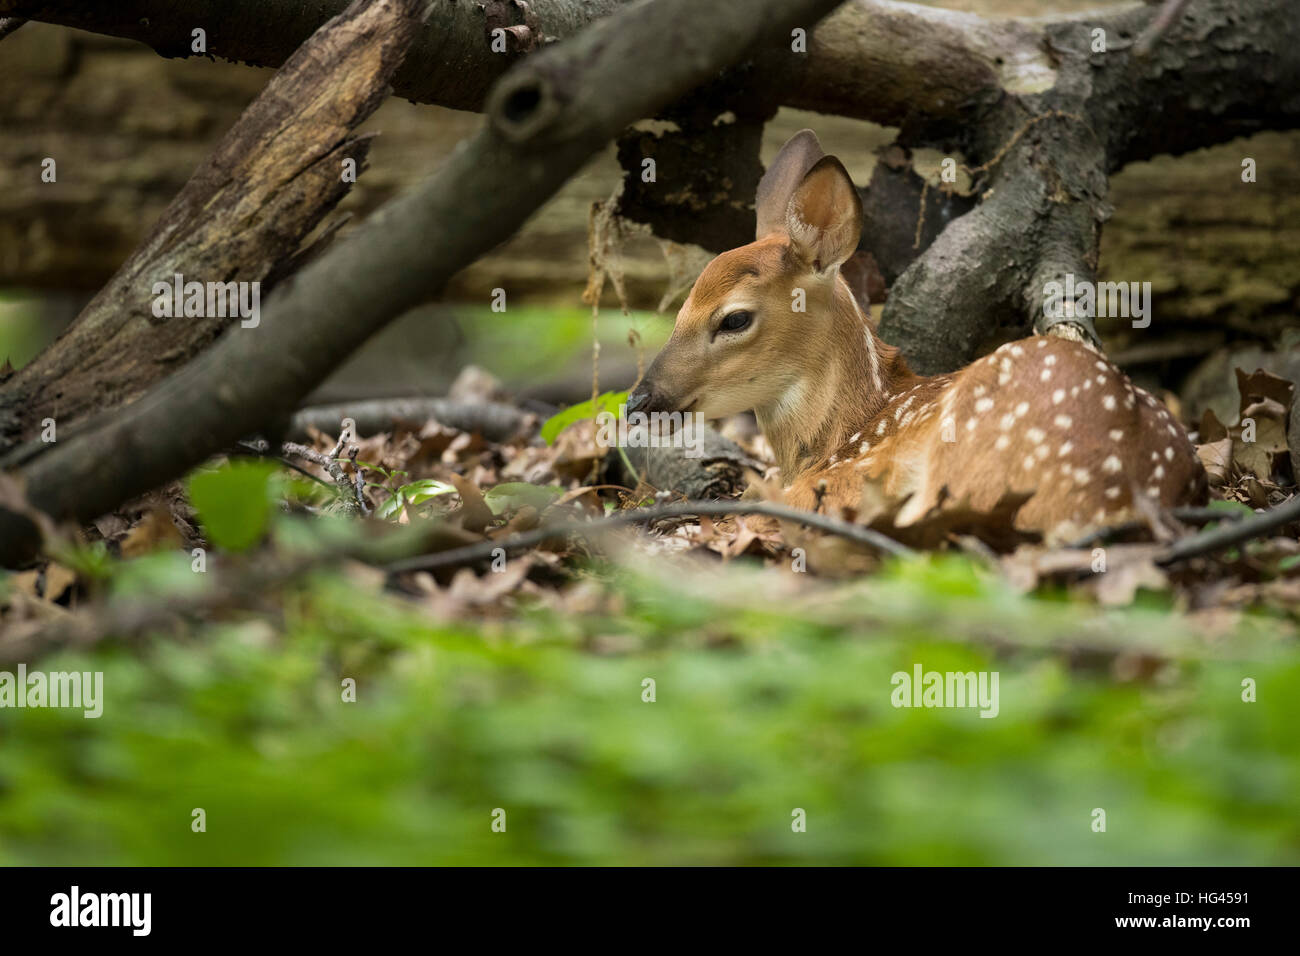 A fawn whitetail deer bedded in the woods. - Stock Image